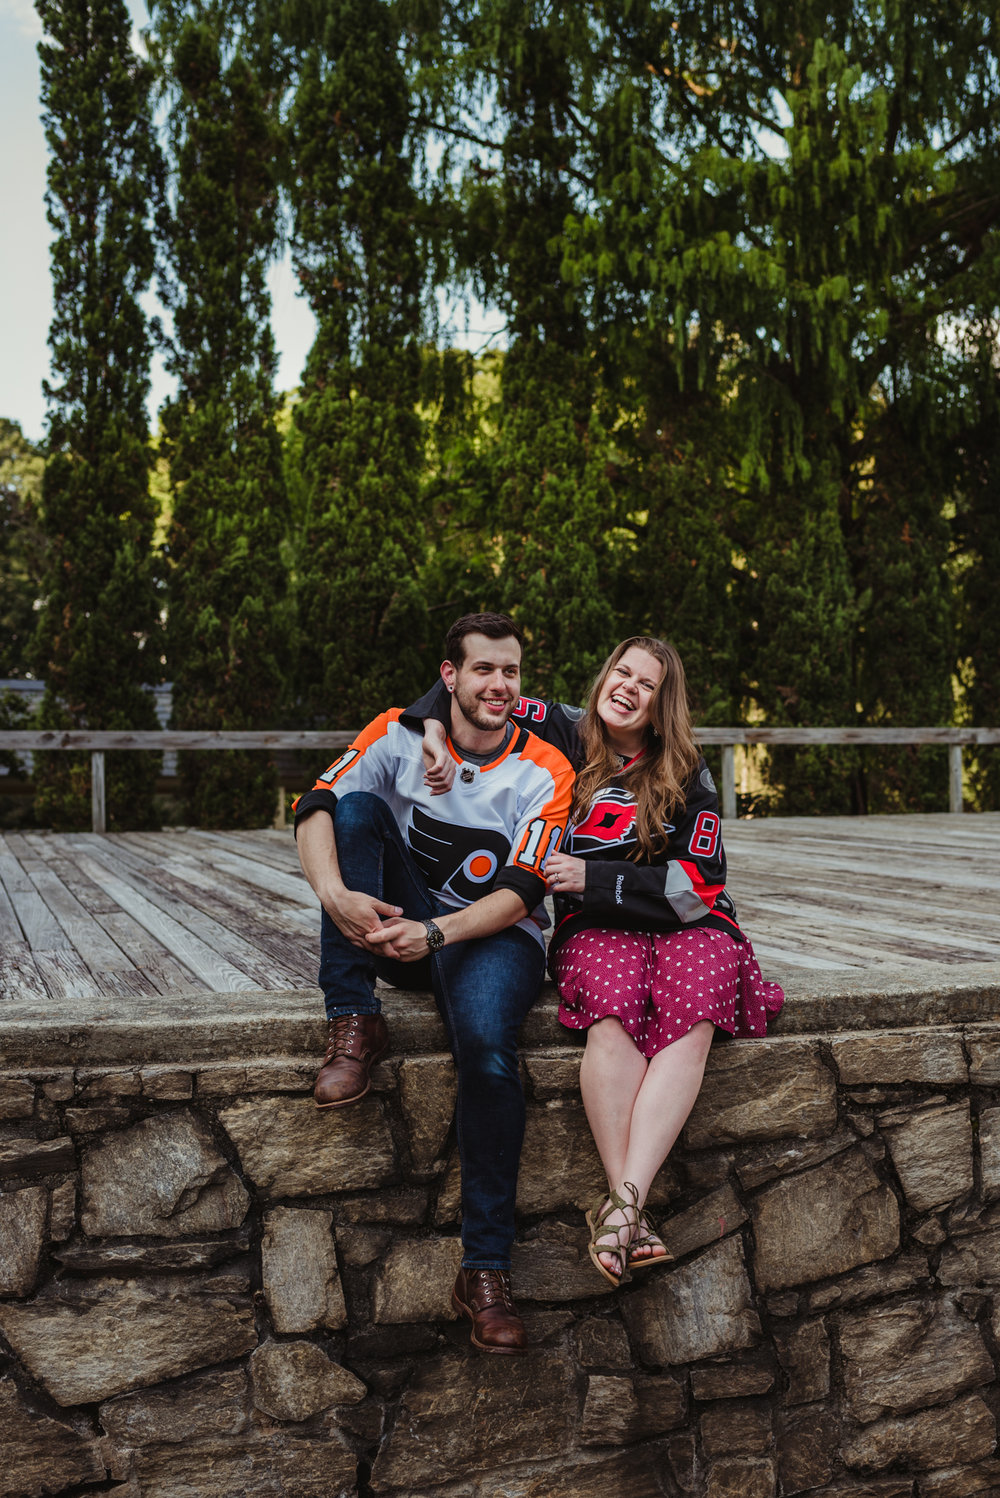 The bride and groom to be, in their Flyers and Hurricanes hockey jerseys, laugh together on the Little Theater stage at the Raleigh Rose Garden during their engagement session with Rose Trail Images.